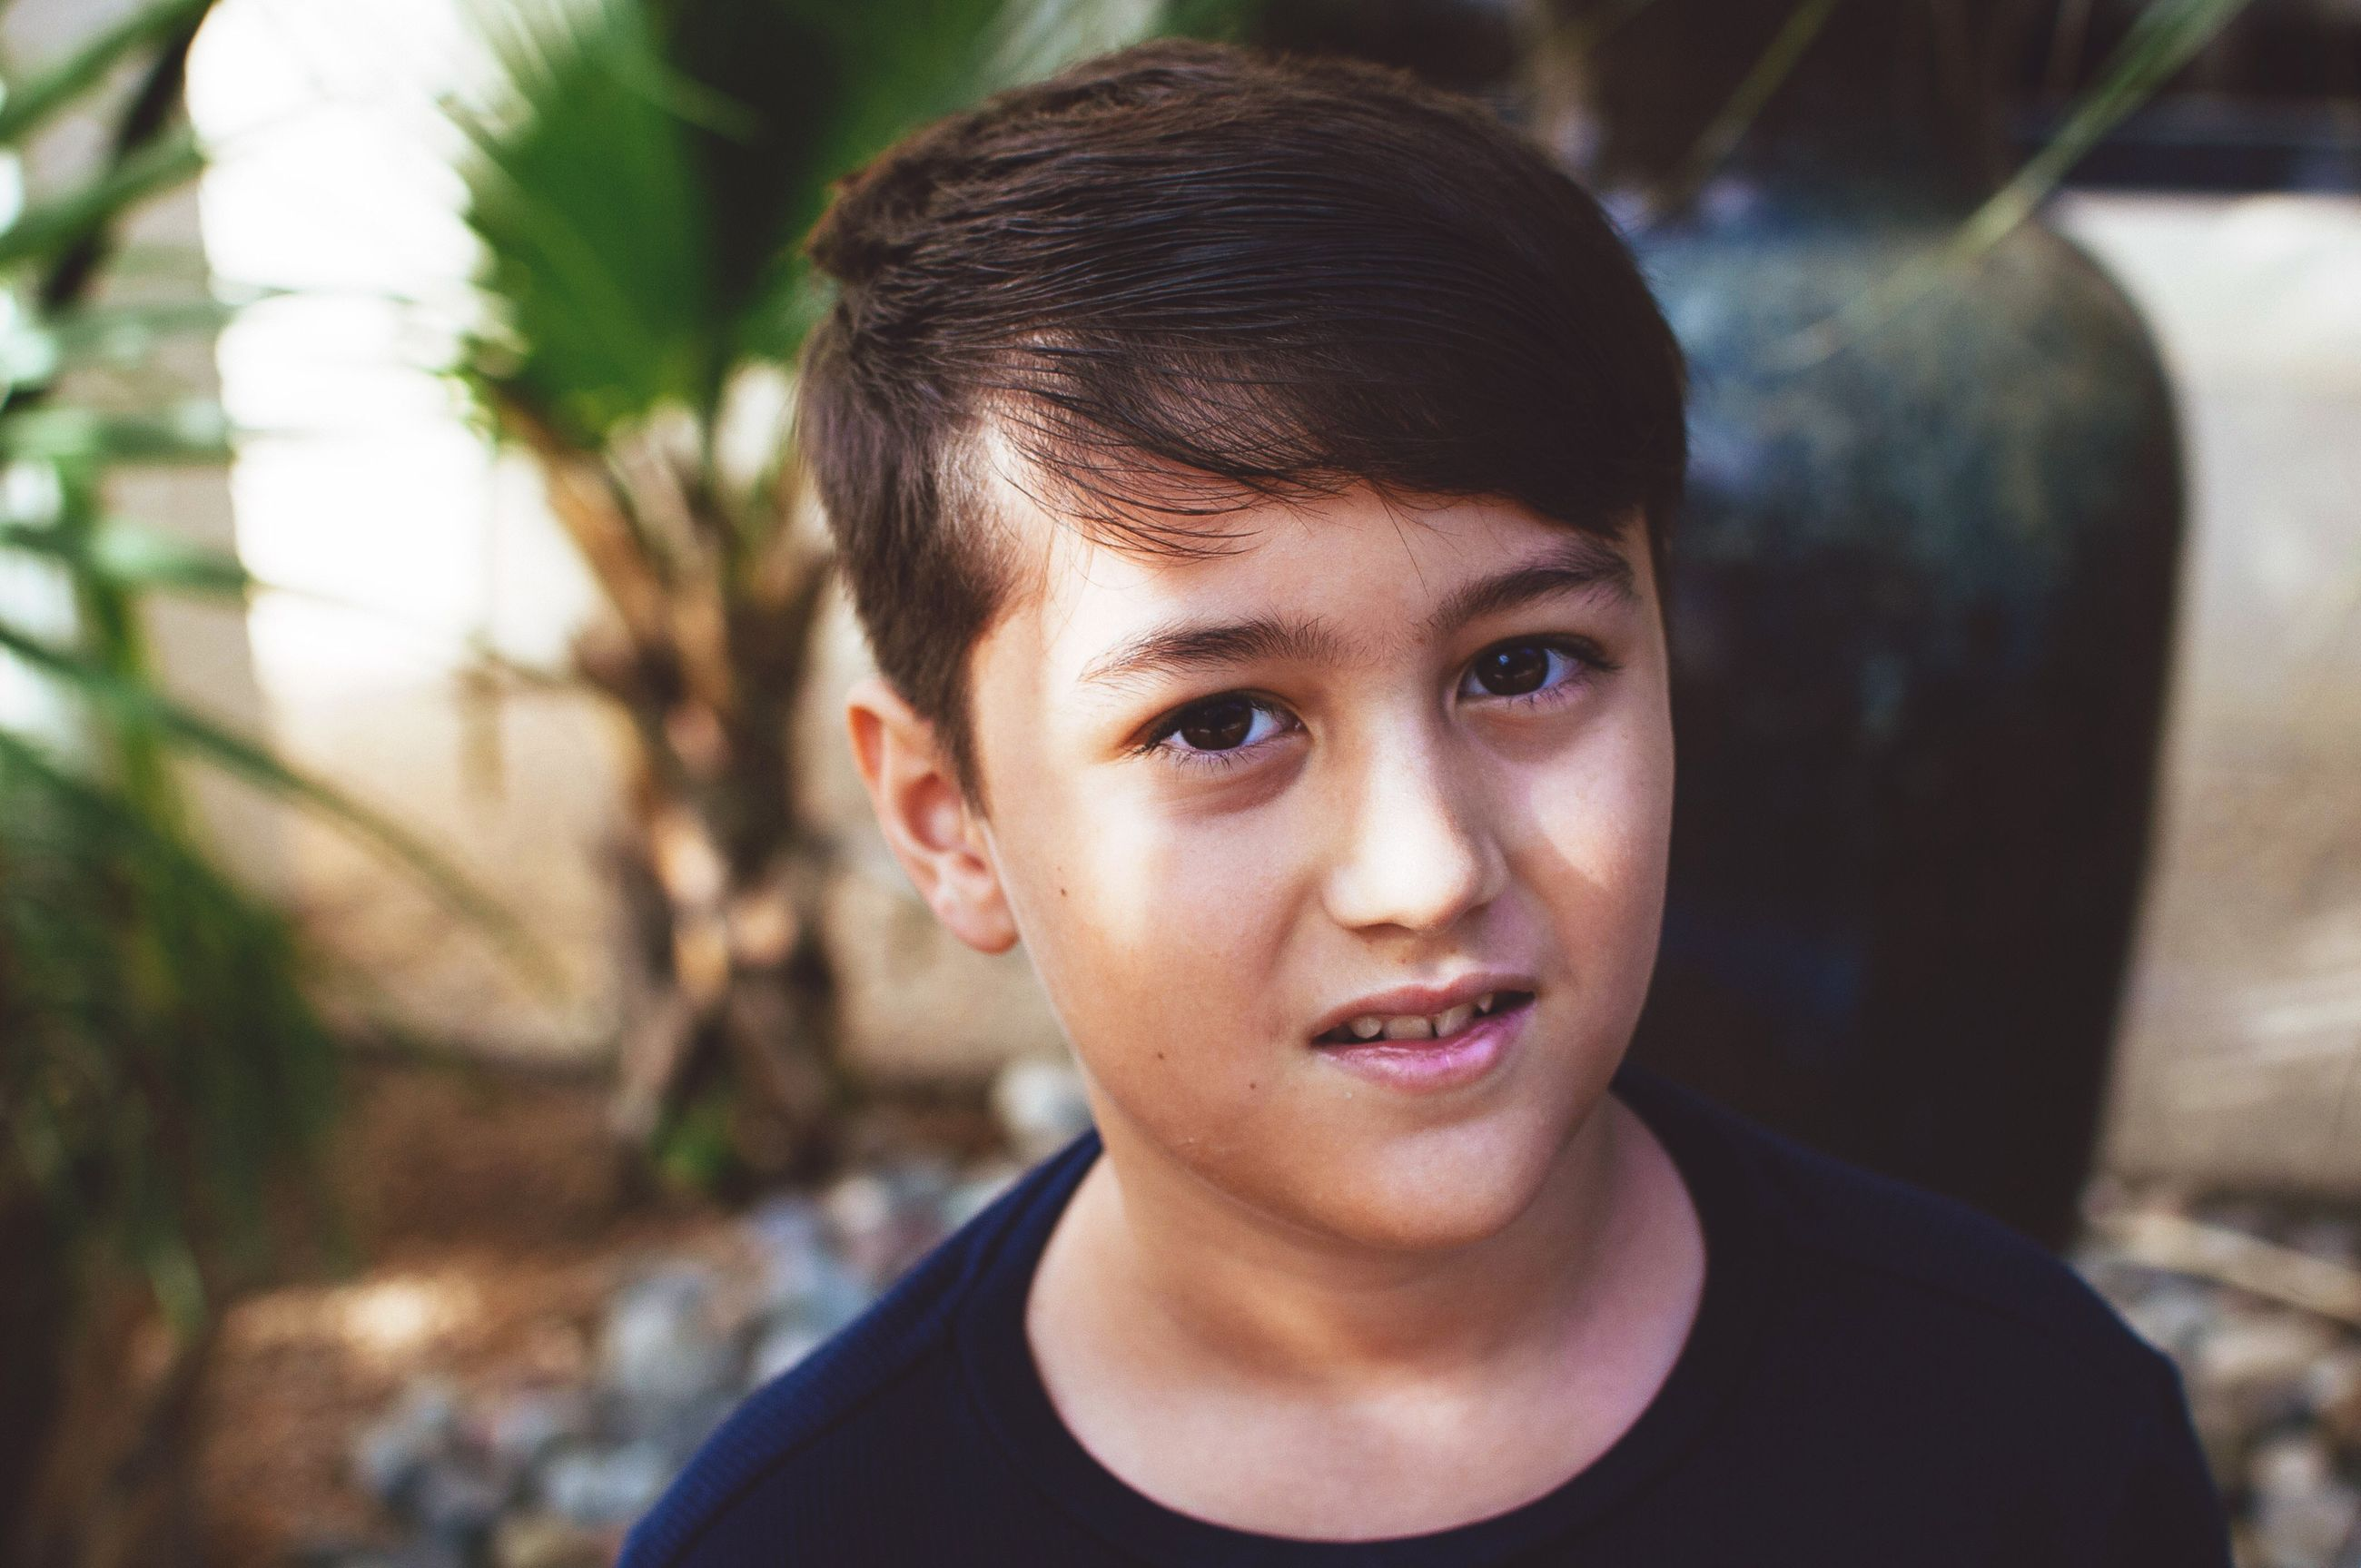 childhood, real people, one person, focus on foreground, boys, outdoors, casual clothing, day, portrait, looking at camera, leisure activity, headshot, lifestyles, happiness, close-up, people